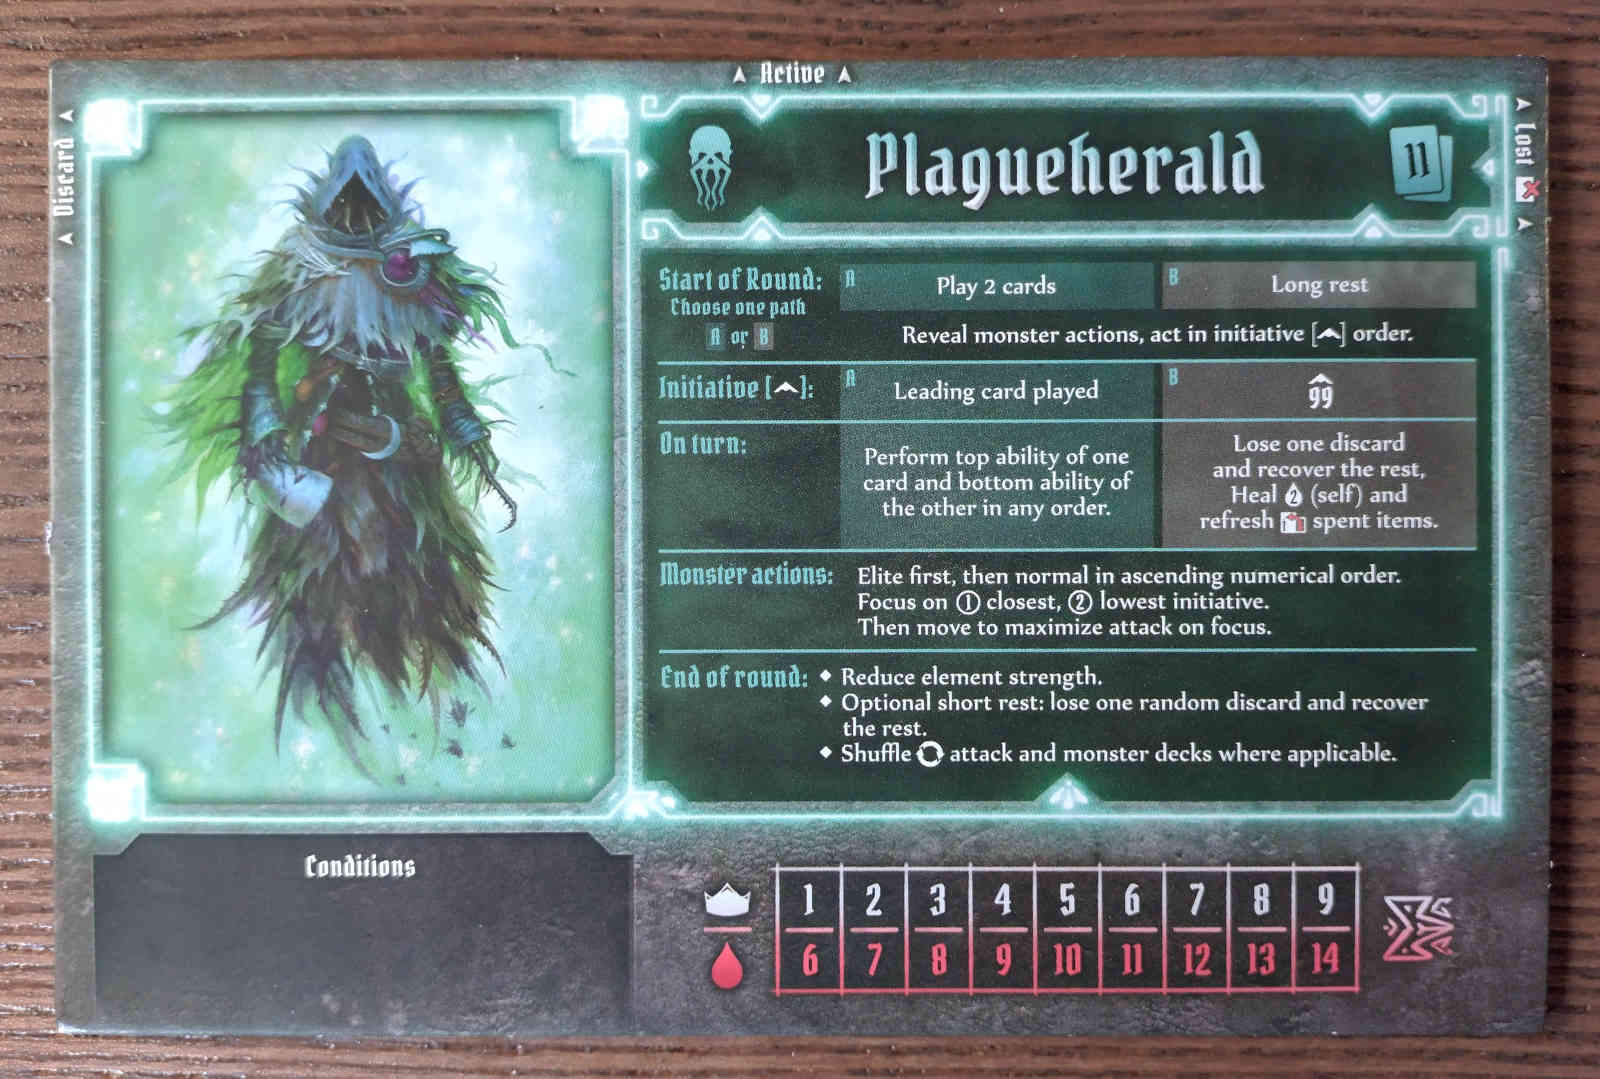 Plagueherald class board showing levels and hit points